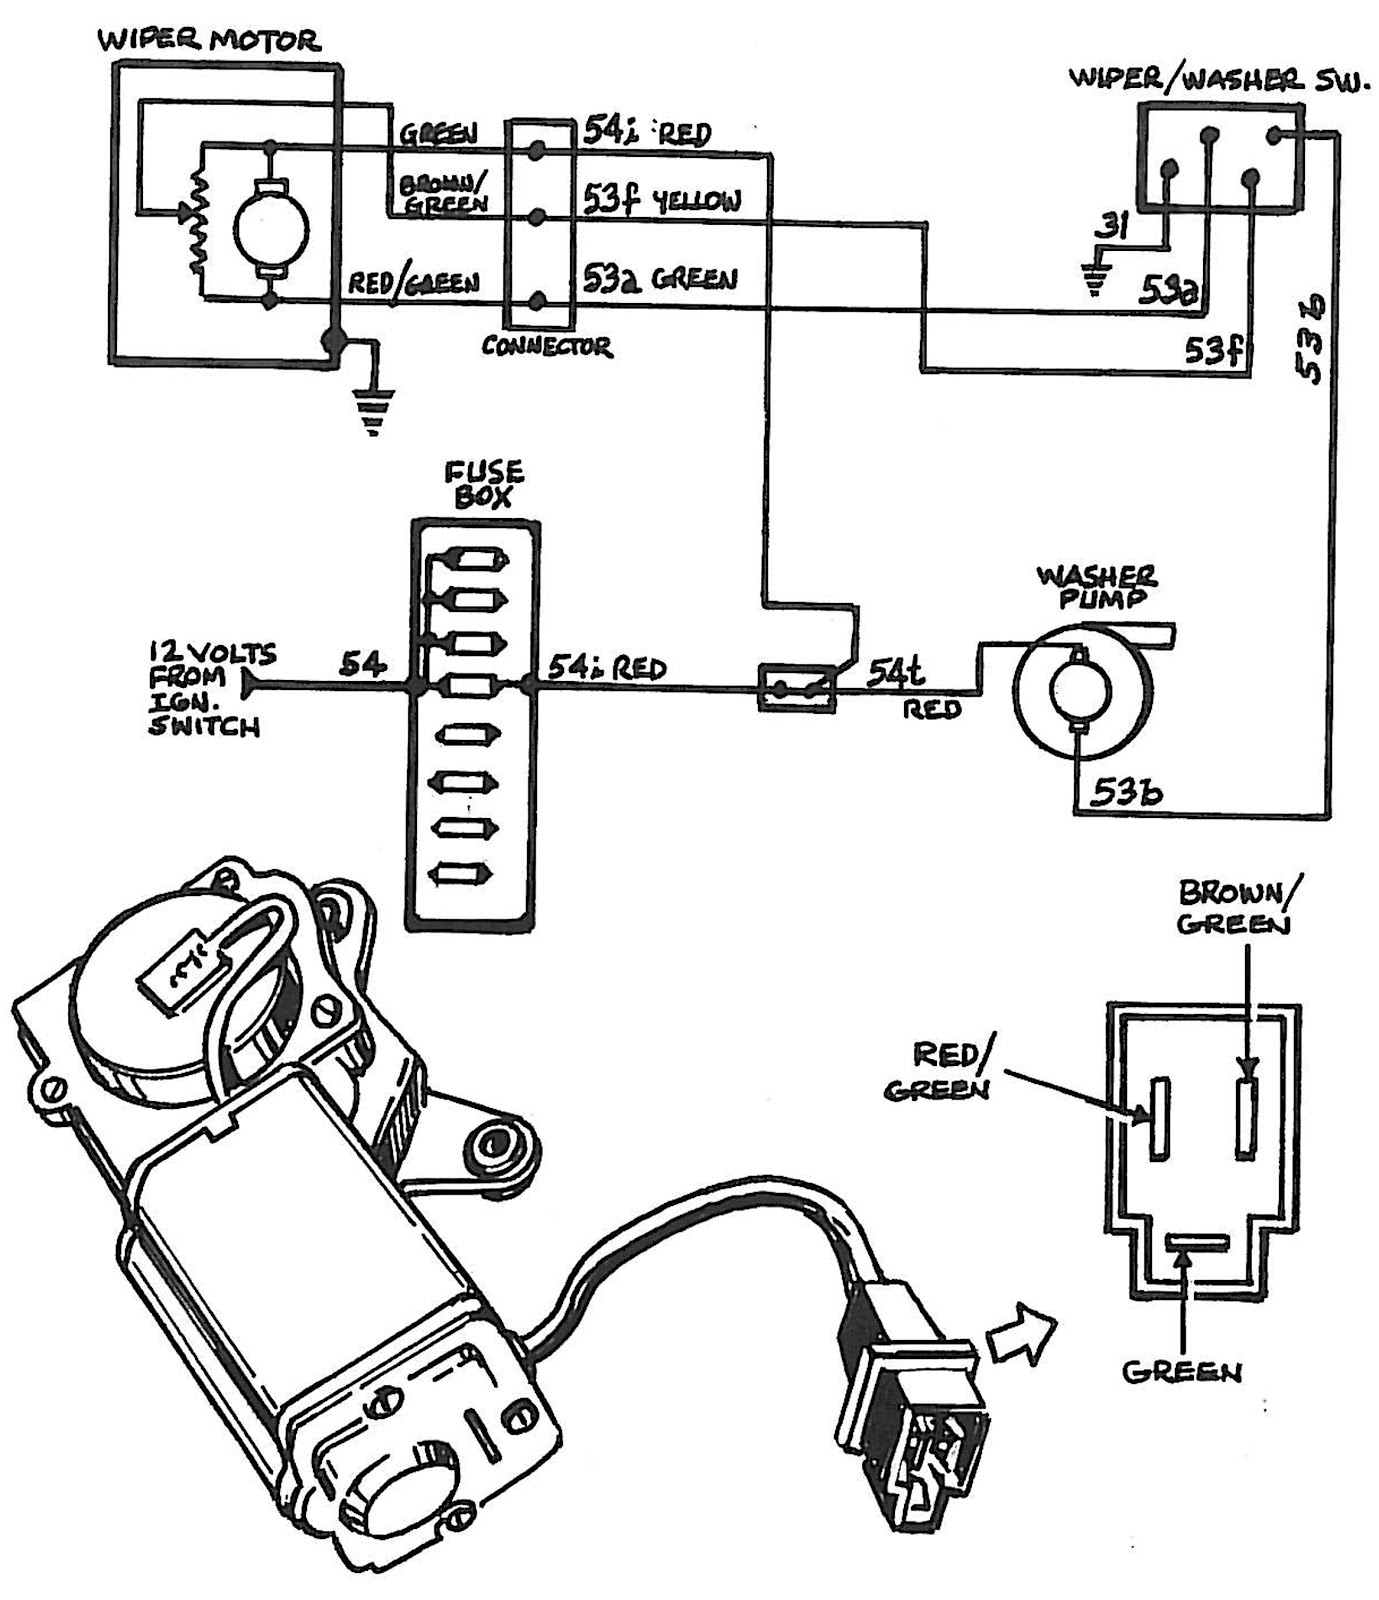 Crank Sensor Location 68932 together with Low Oil Pressure Warning 41924 further PS6n 18597 moreover 6yuga Dodge Ram 1500 Hard Change Crankshaft Position as well Impala 5 3 V8 Engine Diagram. on water pump replacement 2004 chevy tahoe